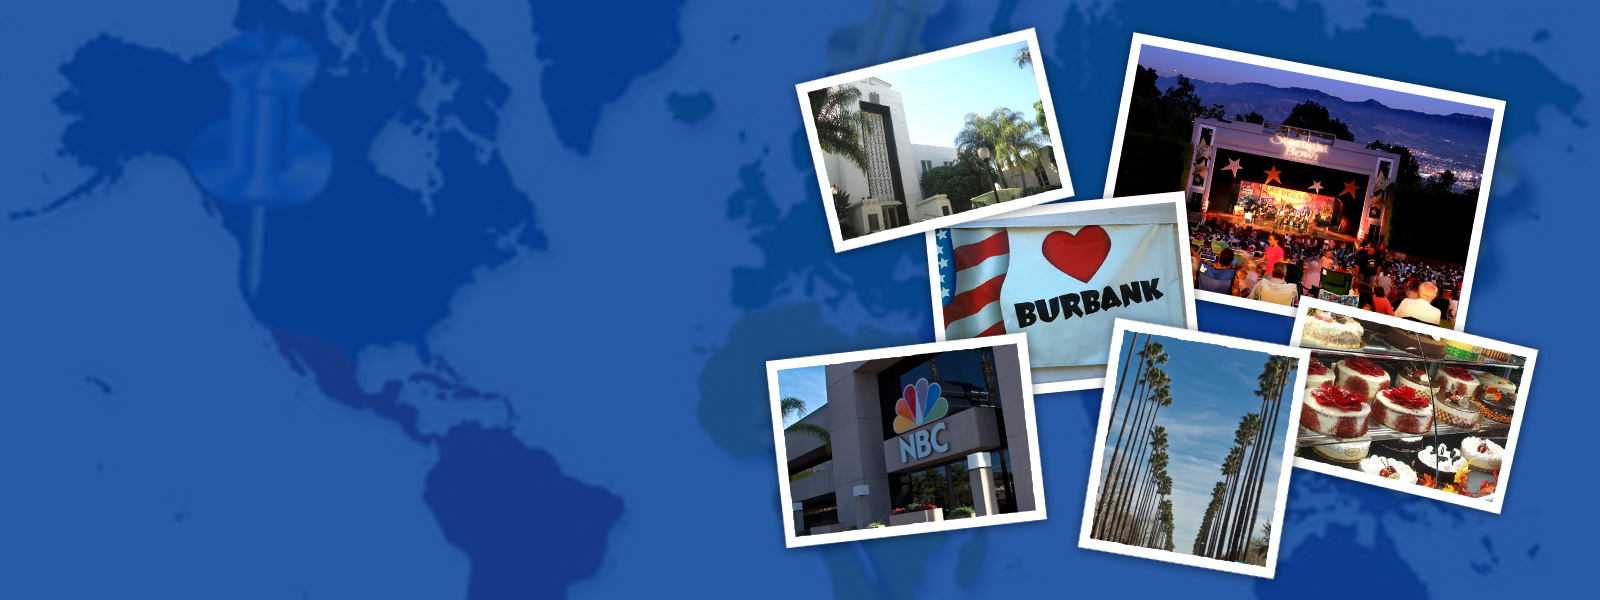 Burbank Sister City Program